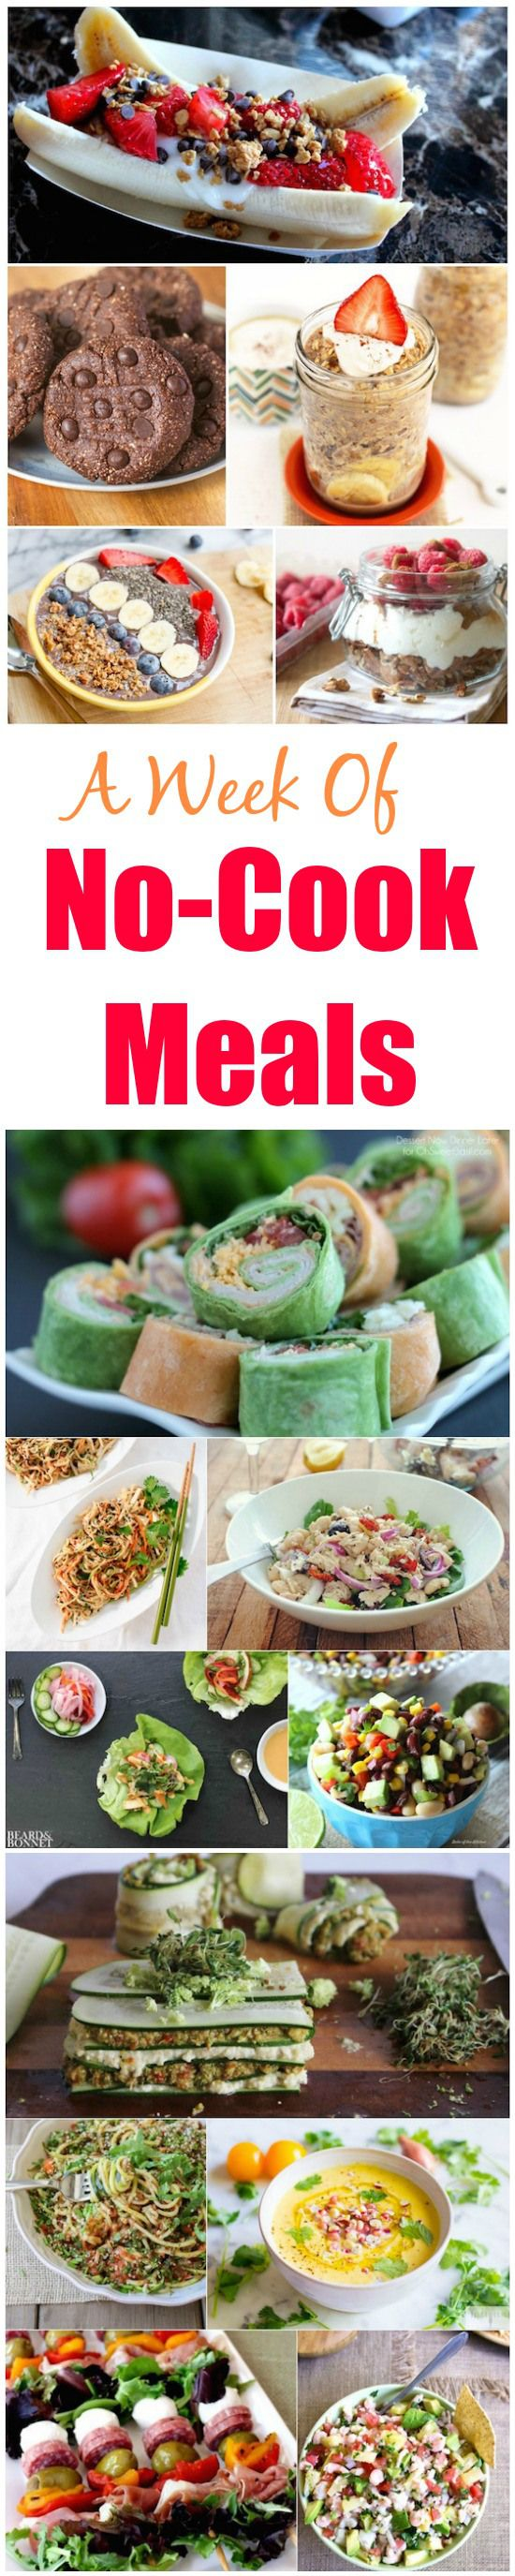 A Week of No-Cook Meal ideas to help you through the hot summer months!